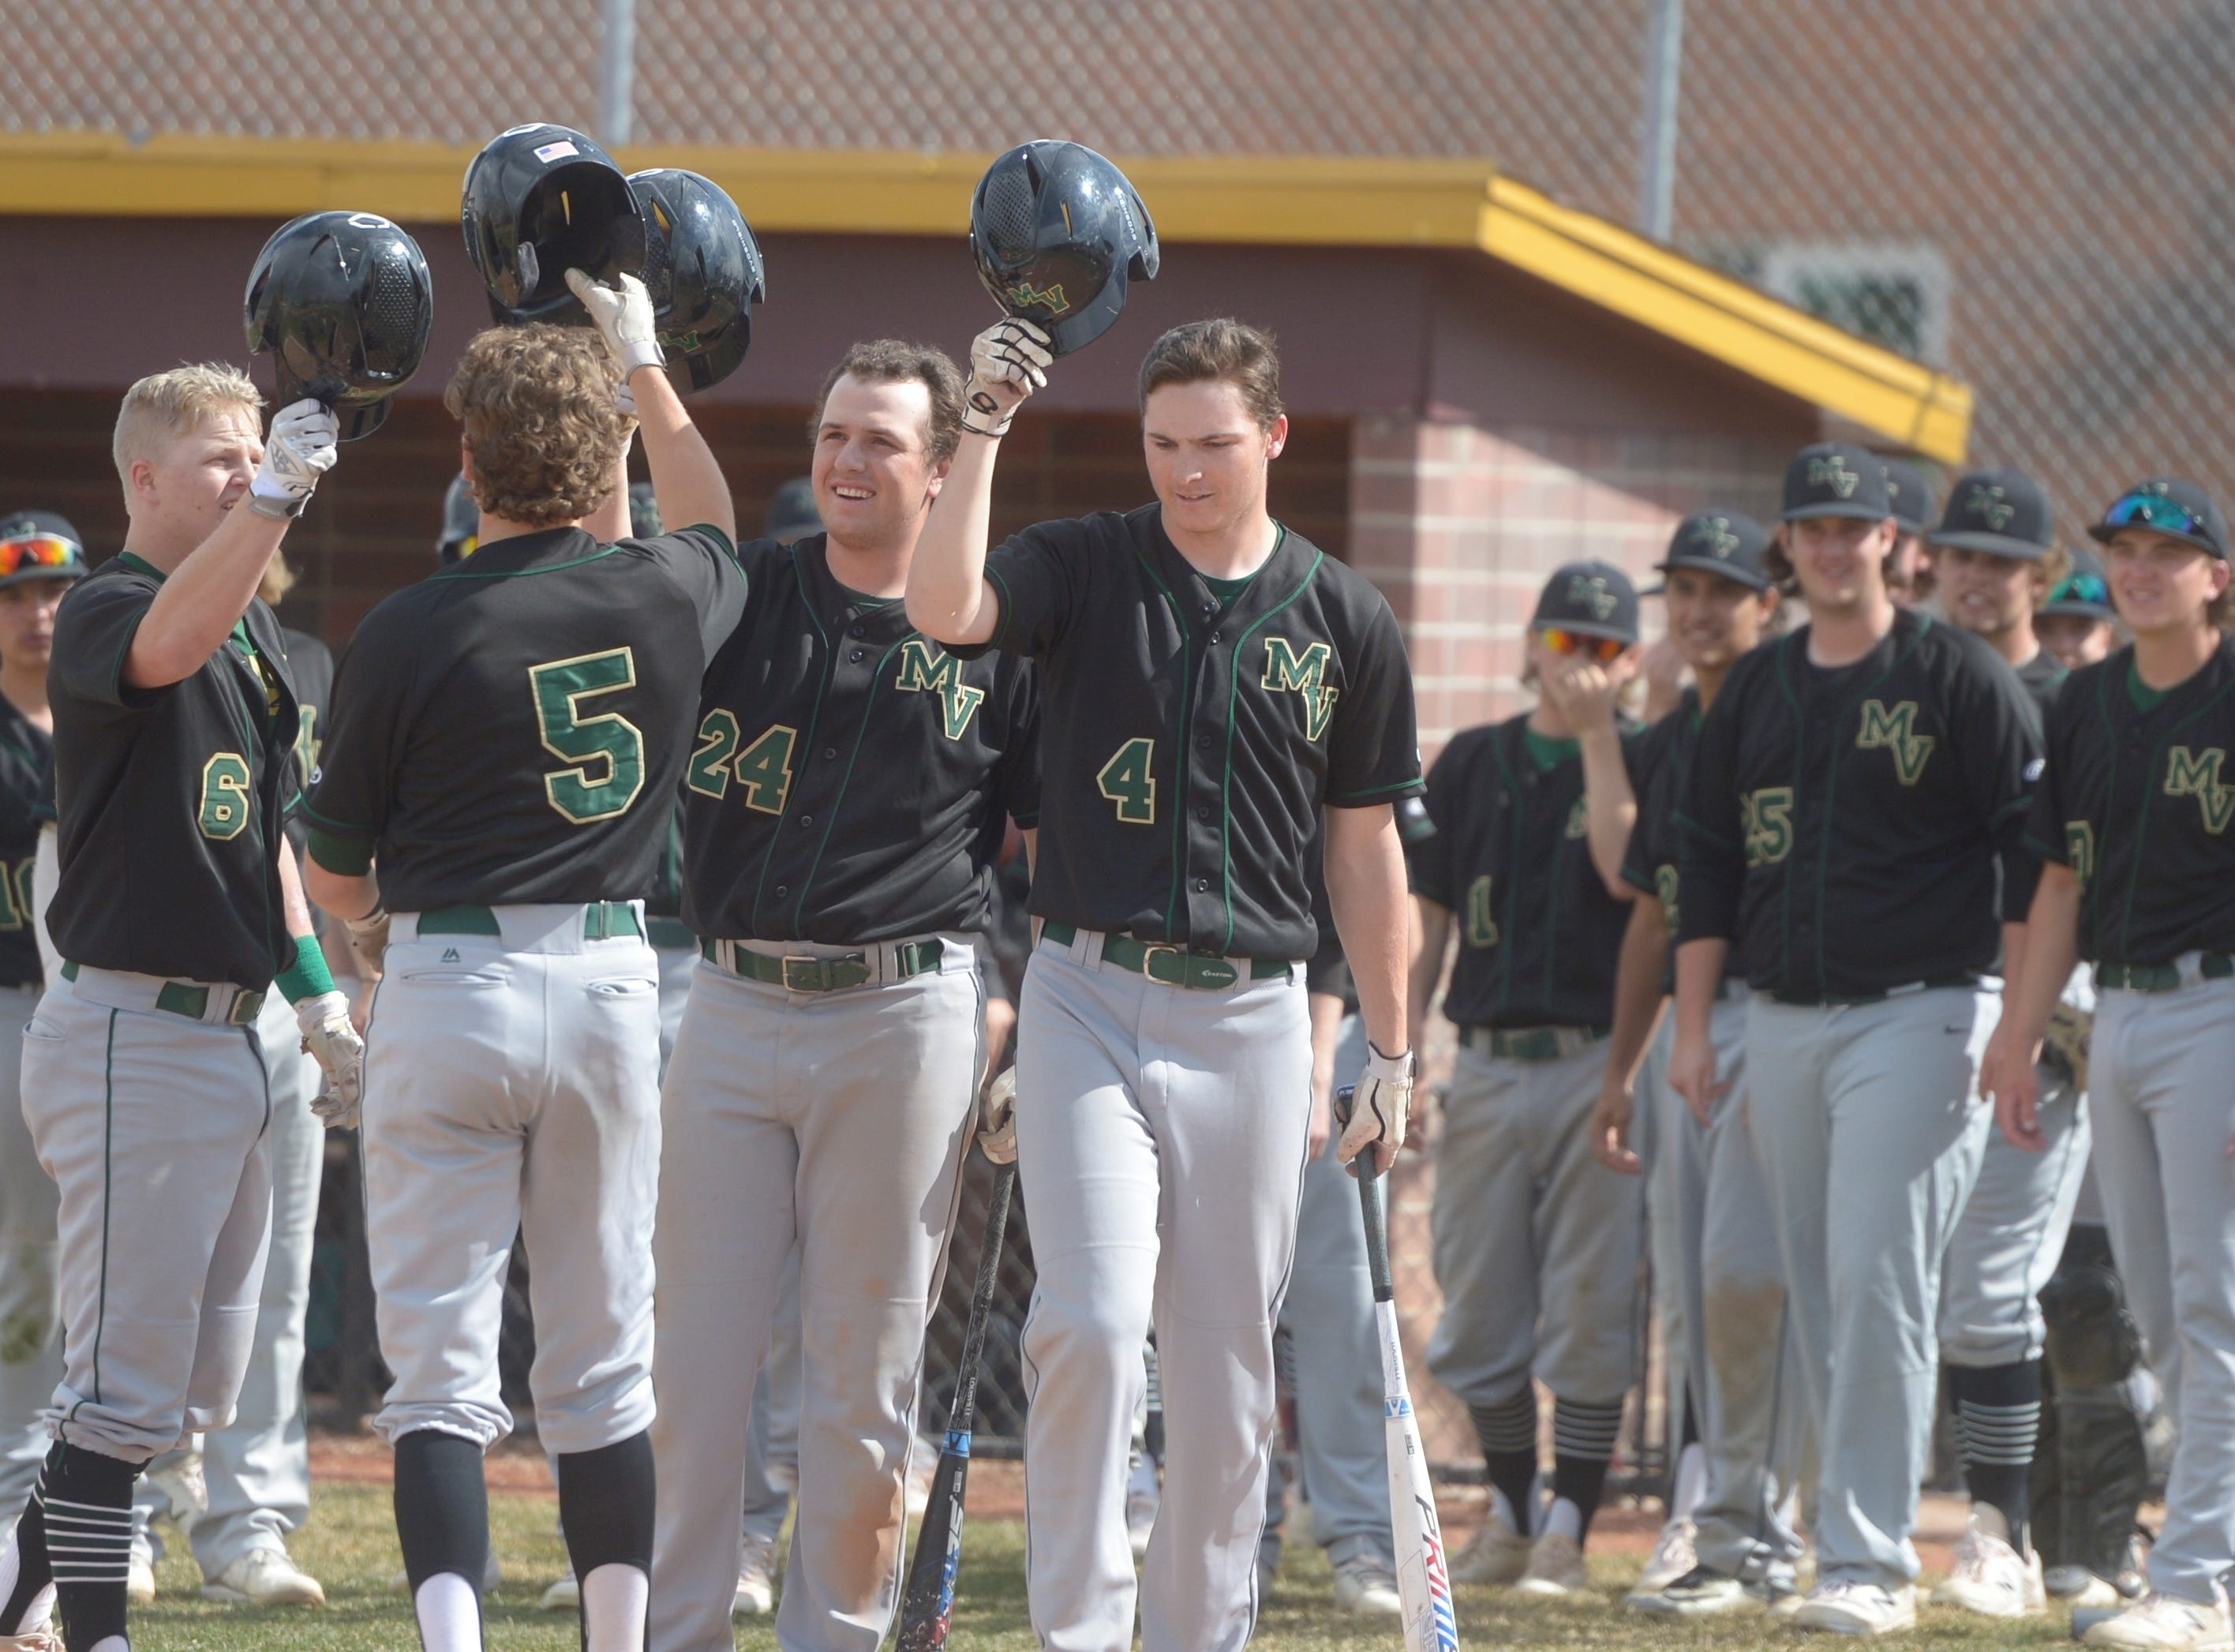 Mountain Vista baseball players celebrate a home run during a game Wednesday, April 3, 2019 against Rocky Mountain. Mountain Vista won 10-2.